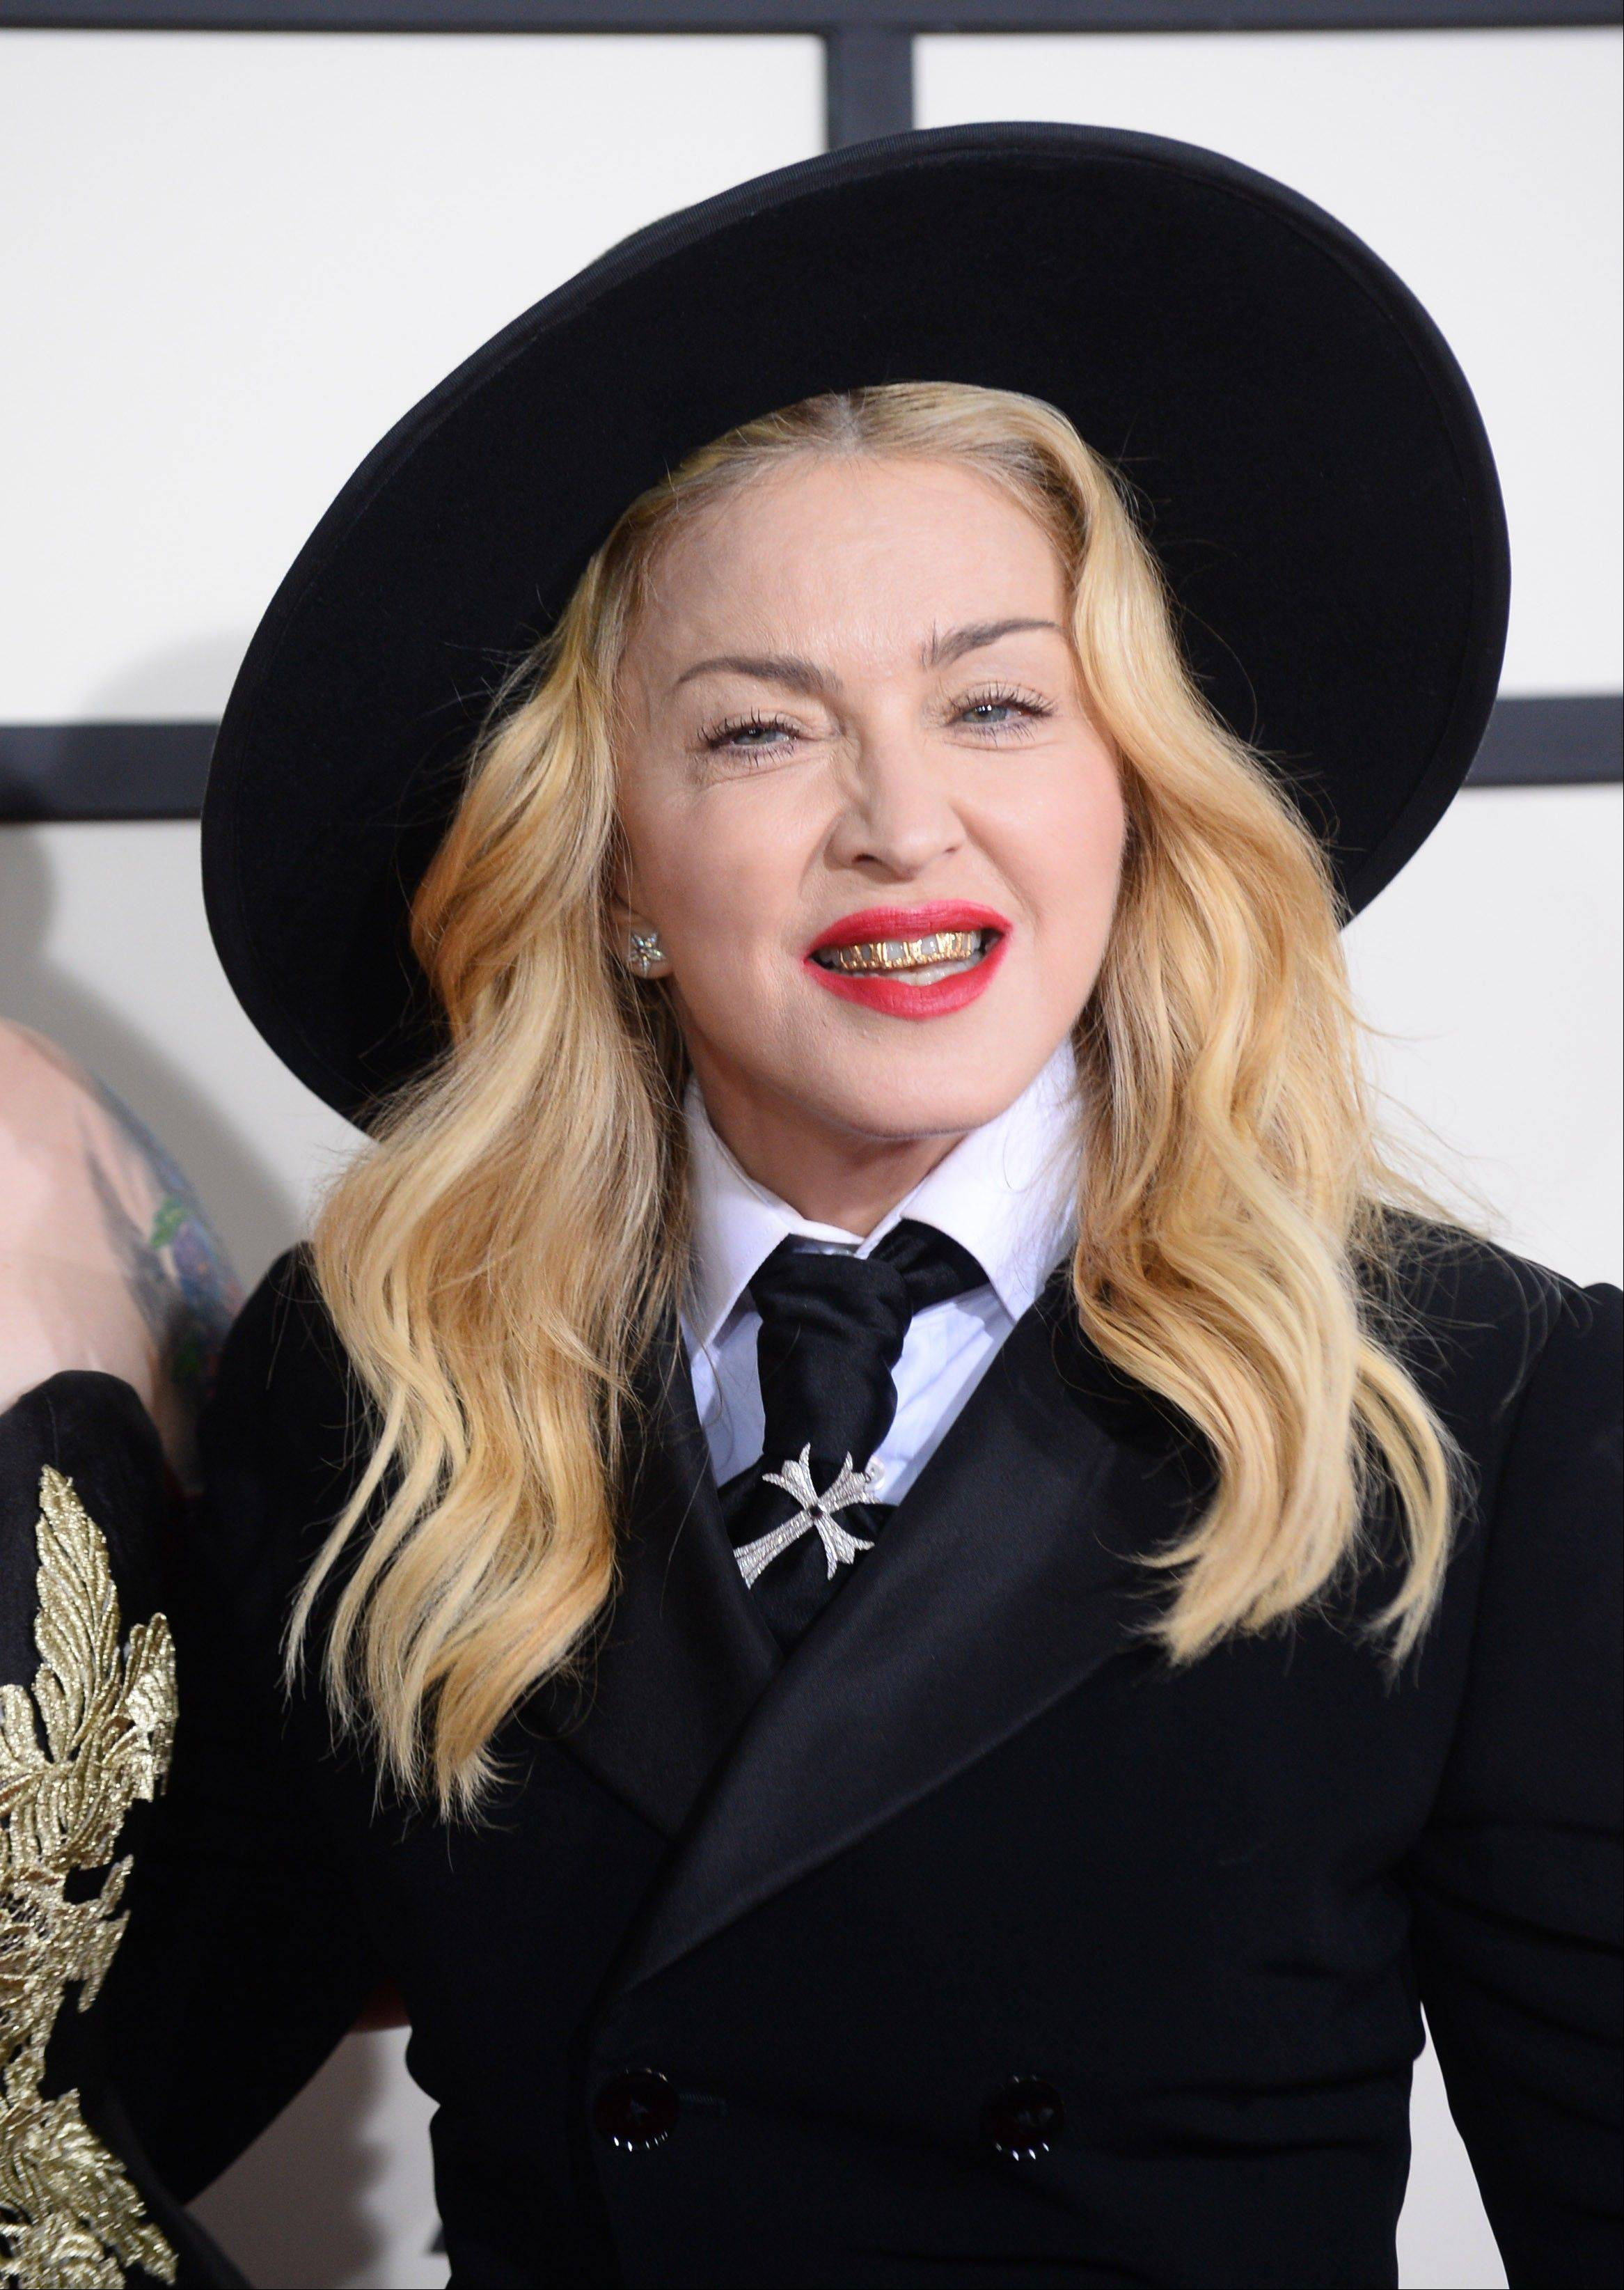 Madonna wears a grill as she arrives at the 56th annual Grammy Awards at Staples Center on Sunday.